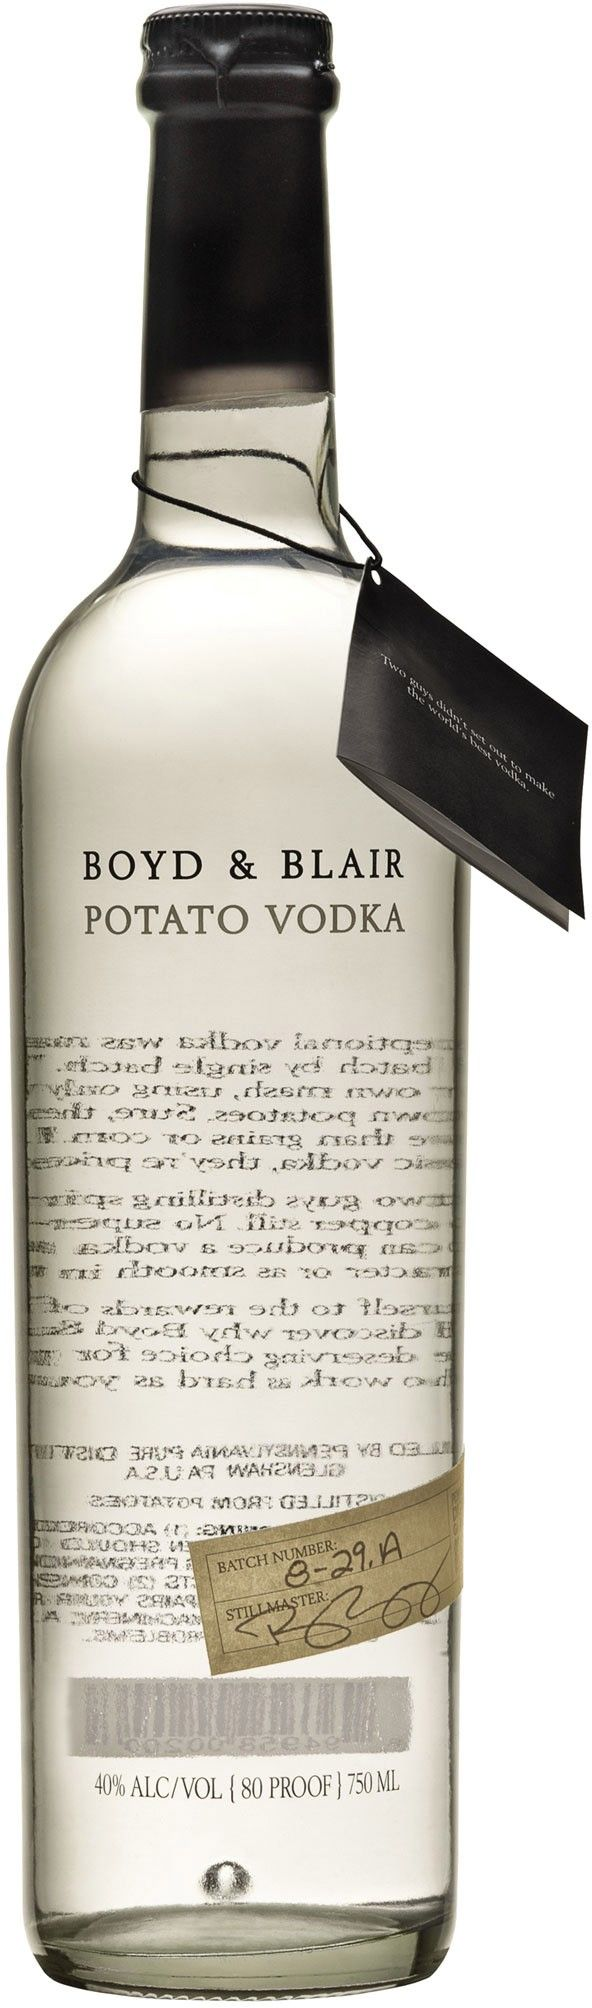 A classic small-batch vodka, Boyd & Blair was ranked the top vodka in the world by the Spirit Journal in 2011, 2012 and 2013.